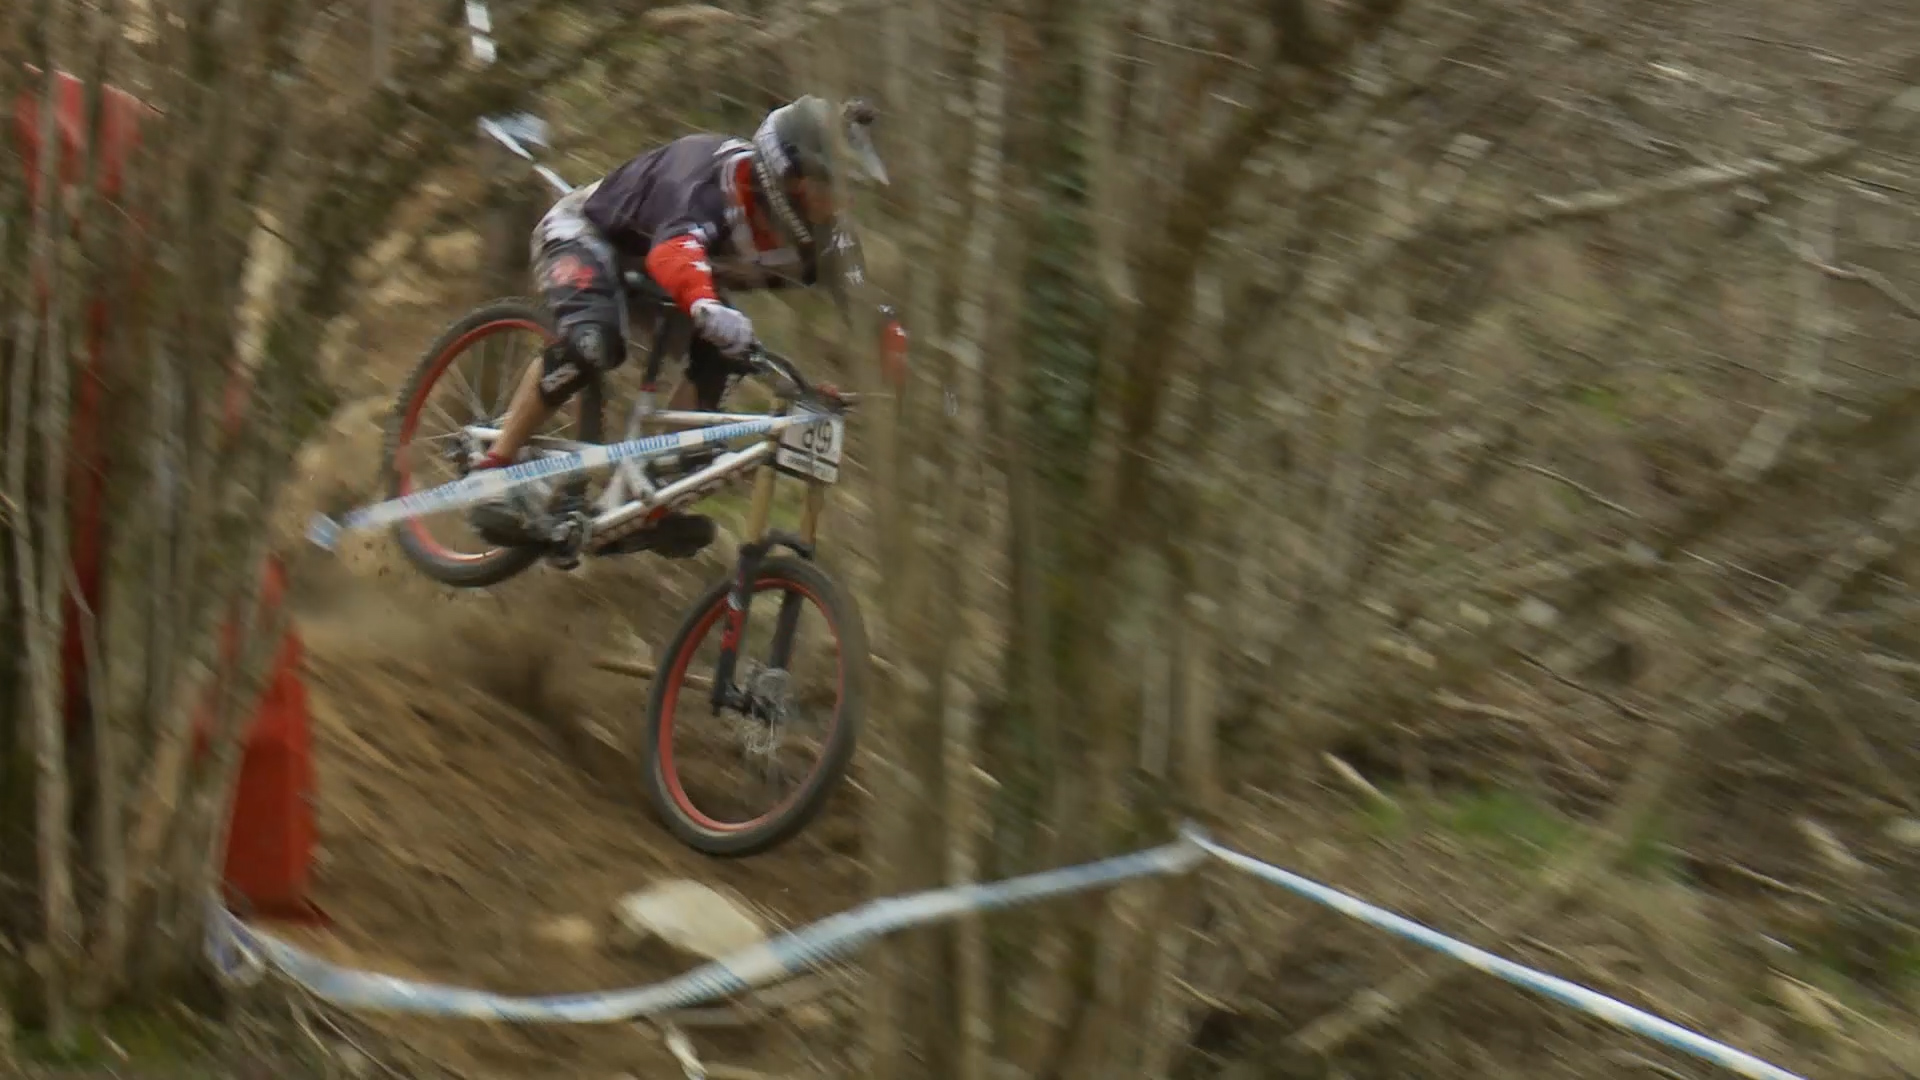 The Ultimate-Near-Death-Avoiding-Sort-of-Crash from the Lourdes Mountain Bike World Cup